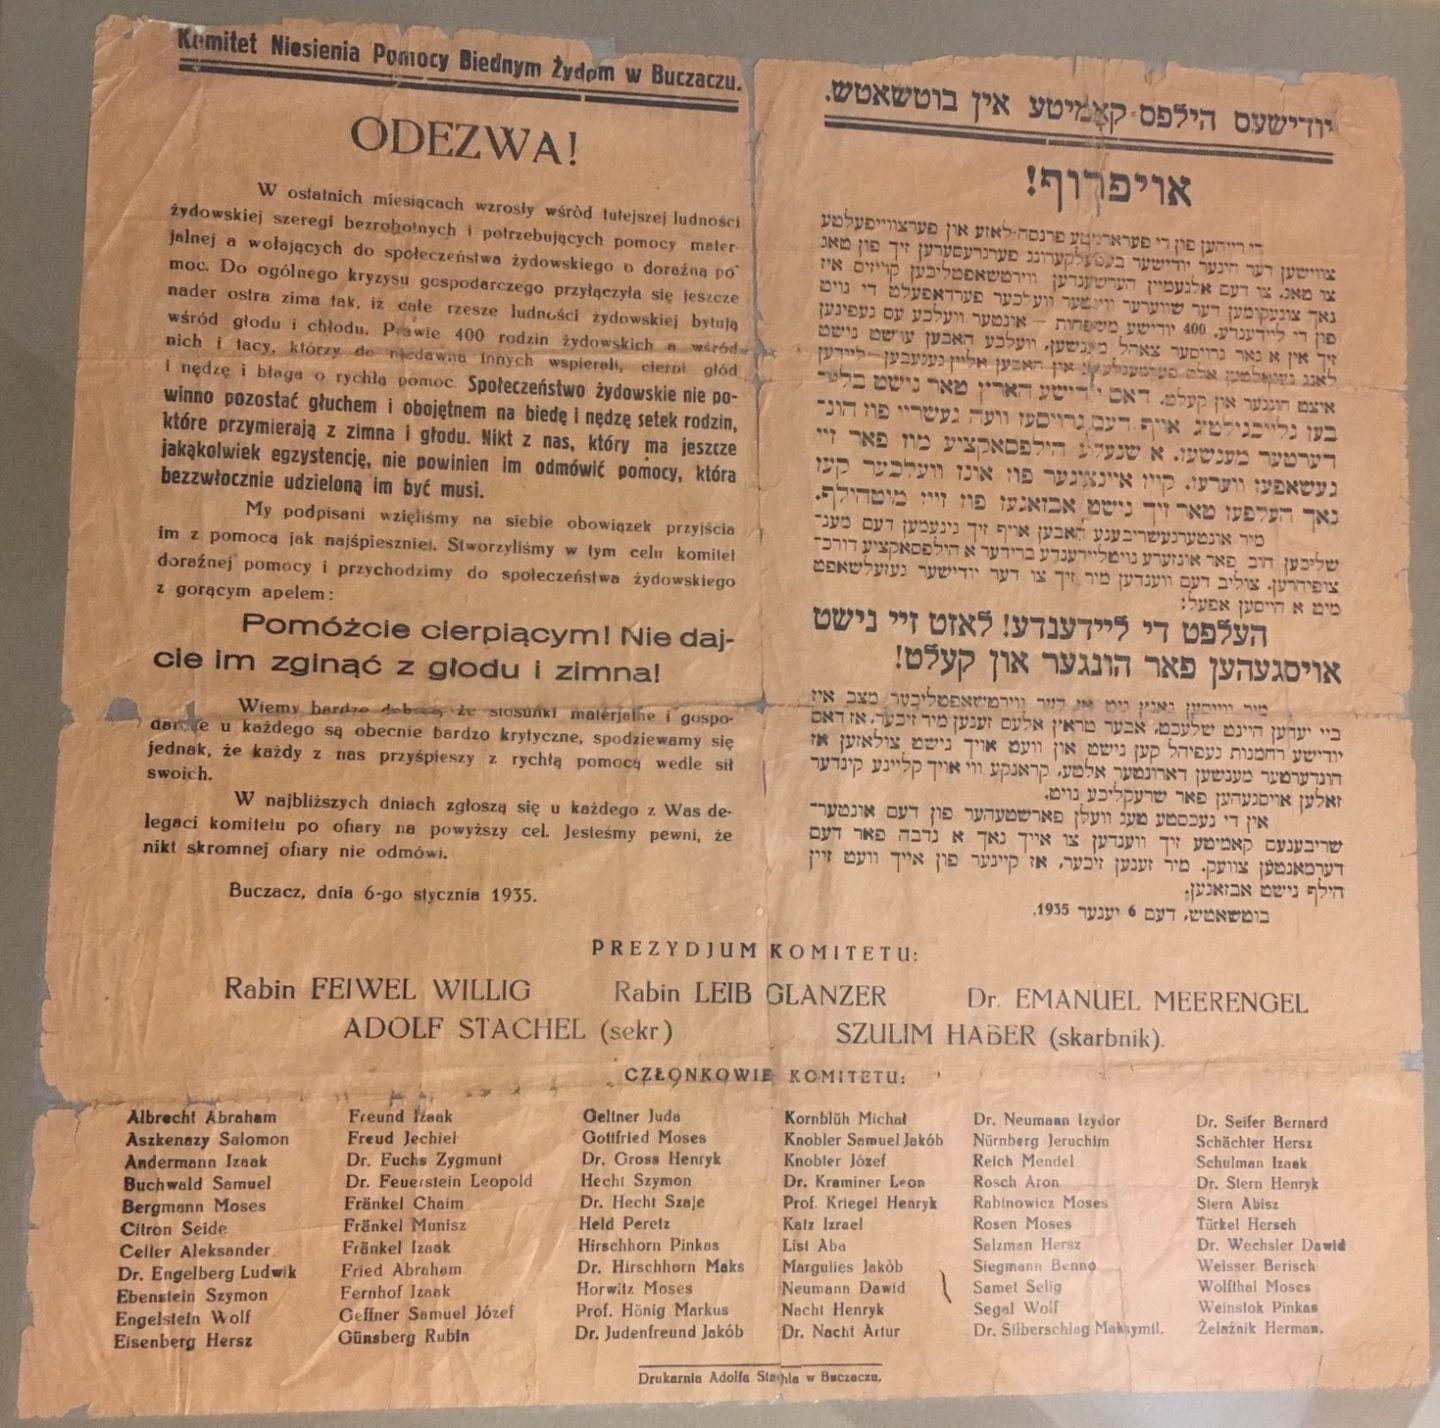 <p><em>An appeal published by the Jewish Relief Committee in Buczacz, Poland, 1935, in Polish and Yiddish; English translation below. From the private collection of Maurice&nbsp;Wolfthal.</em></p><p><em><br></em></p>